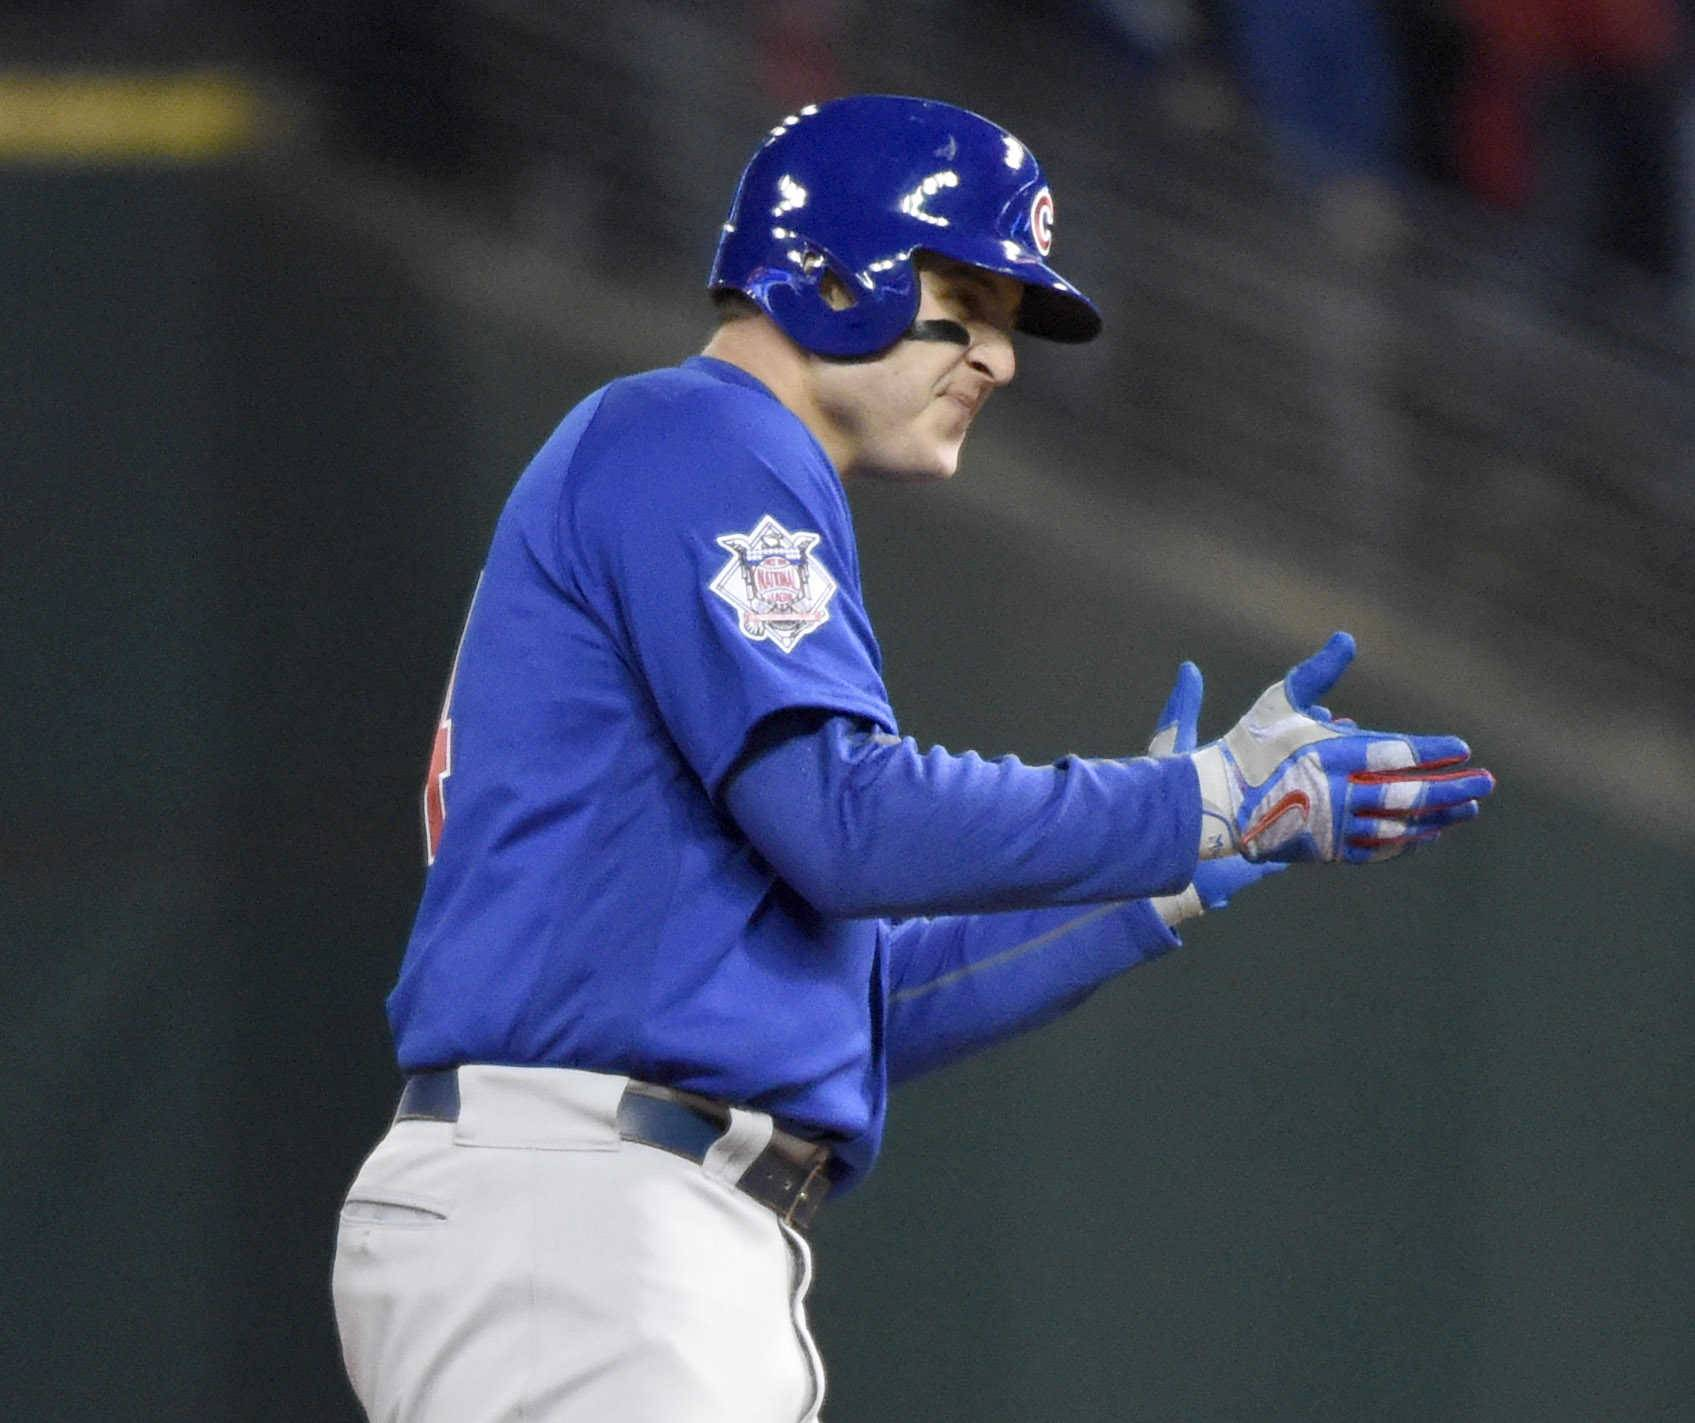 Anthony Rizzo insisted the Cubs weren't worried after Game 1, and they showed why in a Game 2 World Series victory.